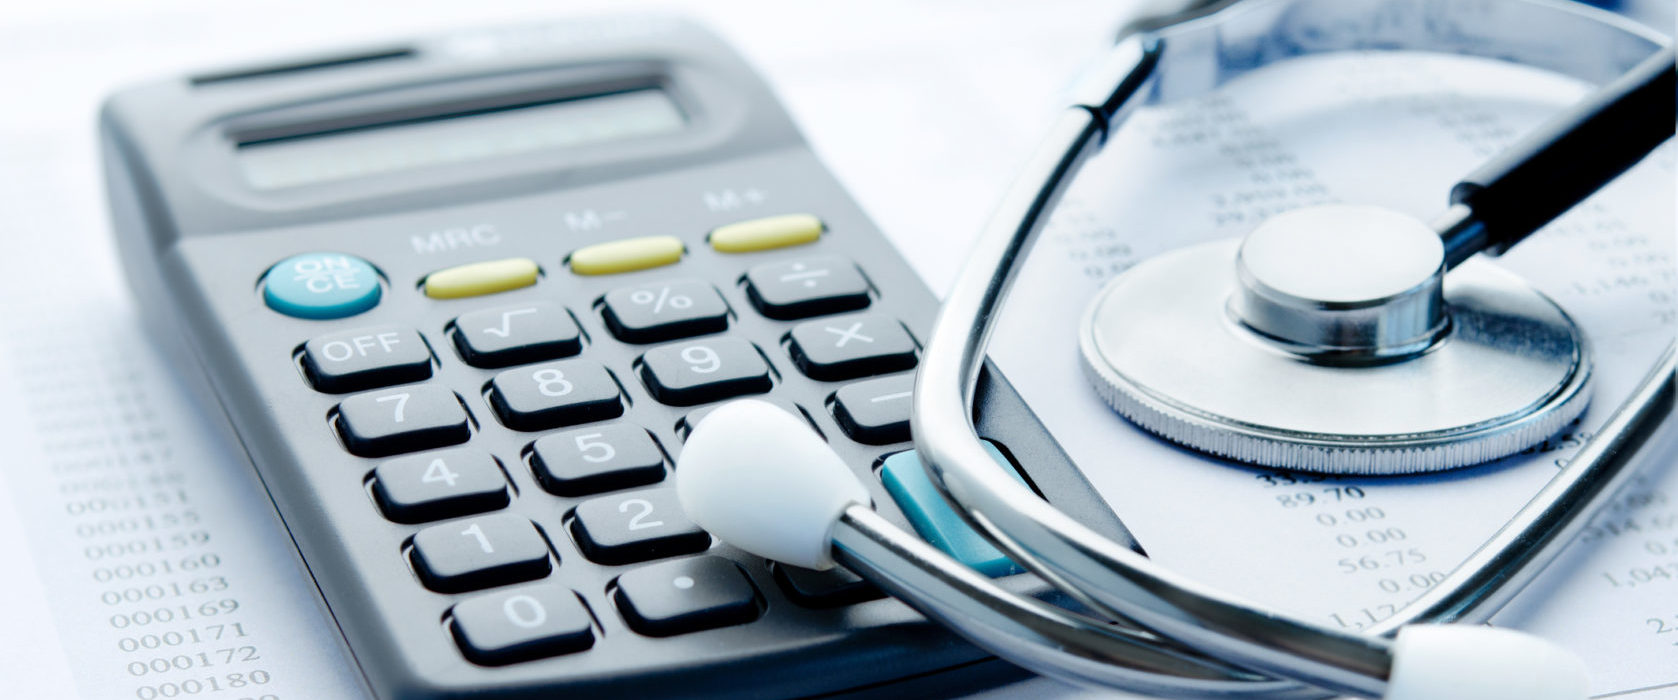 A calculator beside a stethoscope on top of paperwork